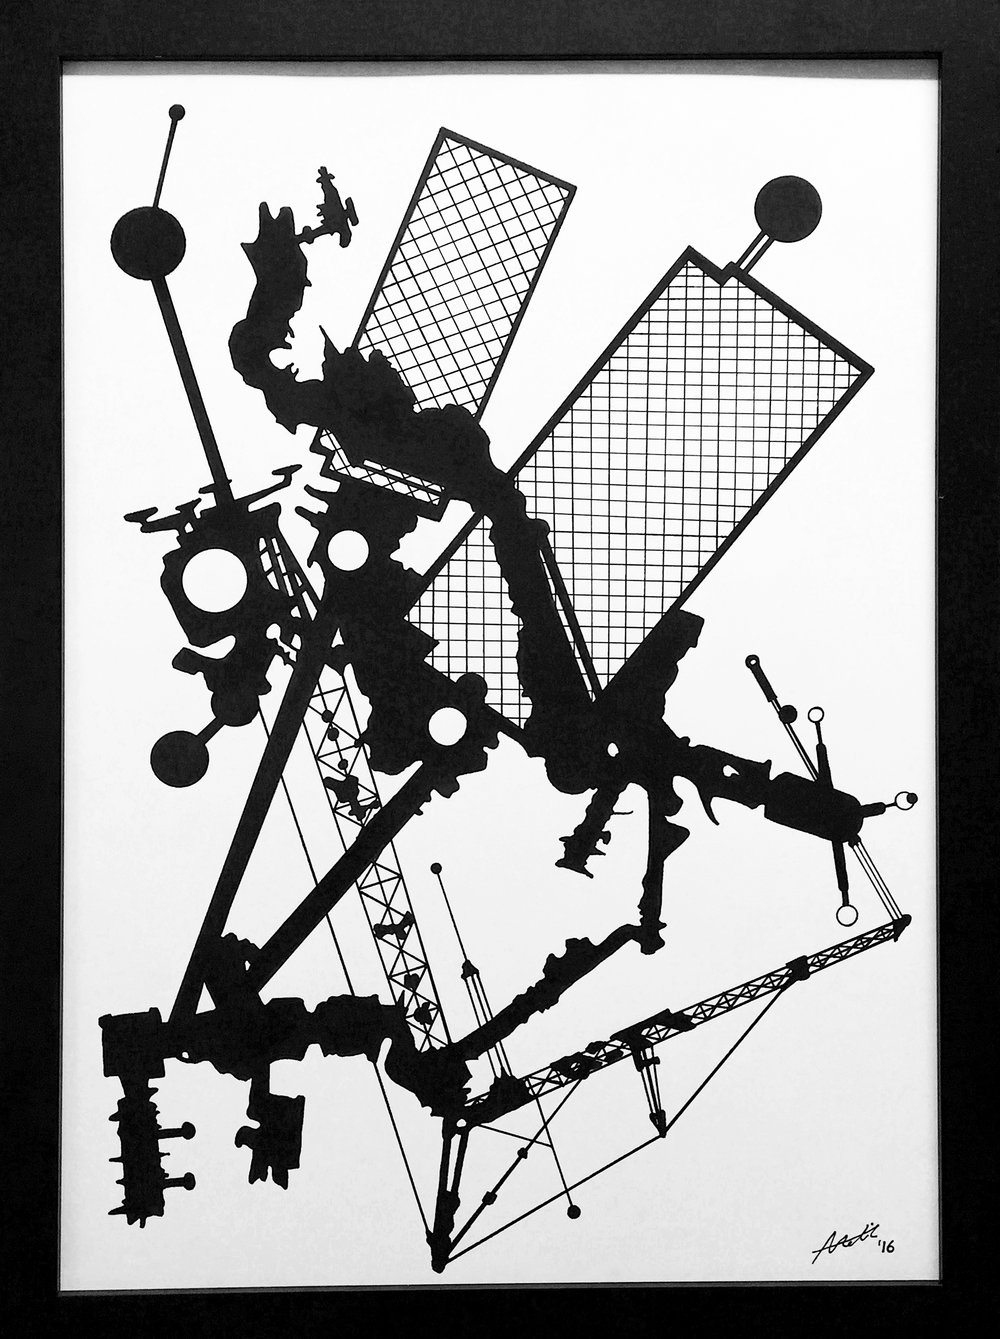 James Boman   Absolute, 2016. Pen and ink drawing. 59 x 42 cm. £350.00 (framed).